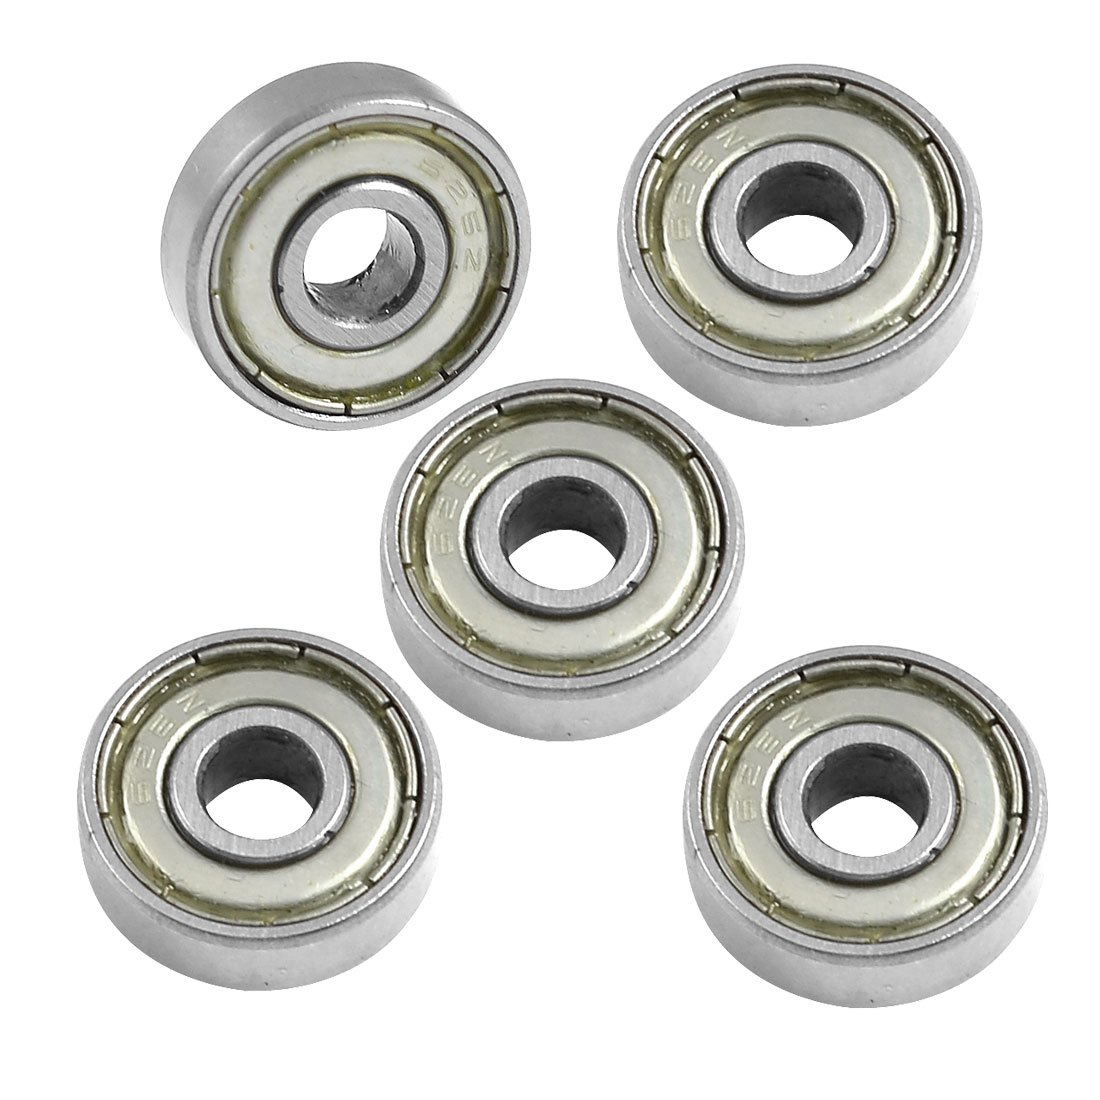 BHBD <font><b>626Z</b></font> 6mm x 19mm x 6mm Shielded Radial Miniature Deep Groove Ball <font><b>Bearing</b></font> 5 pcs image